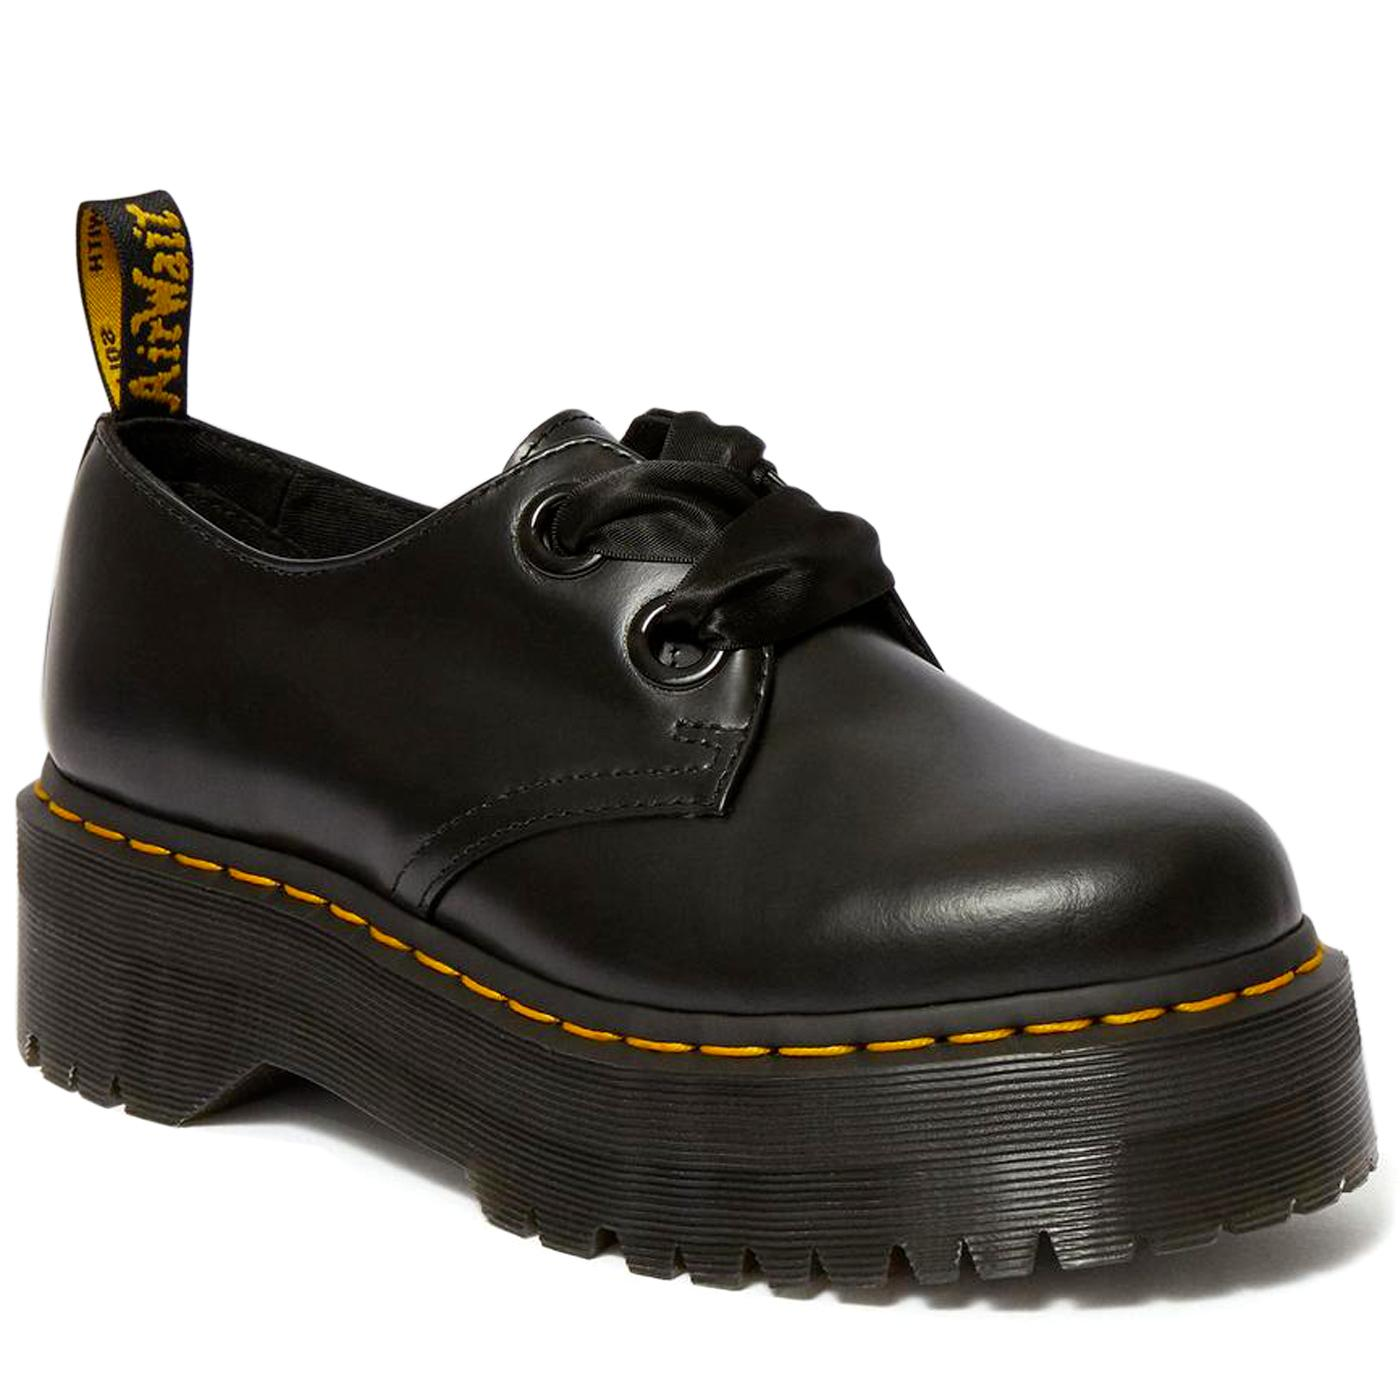 Holly DR MARTENS Women's Quad Platform Shoes